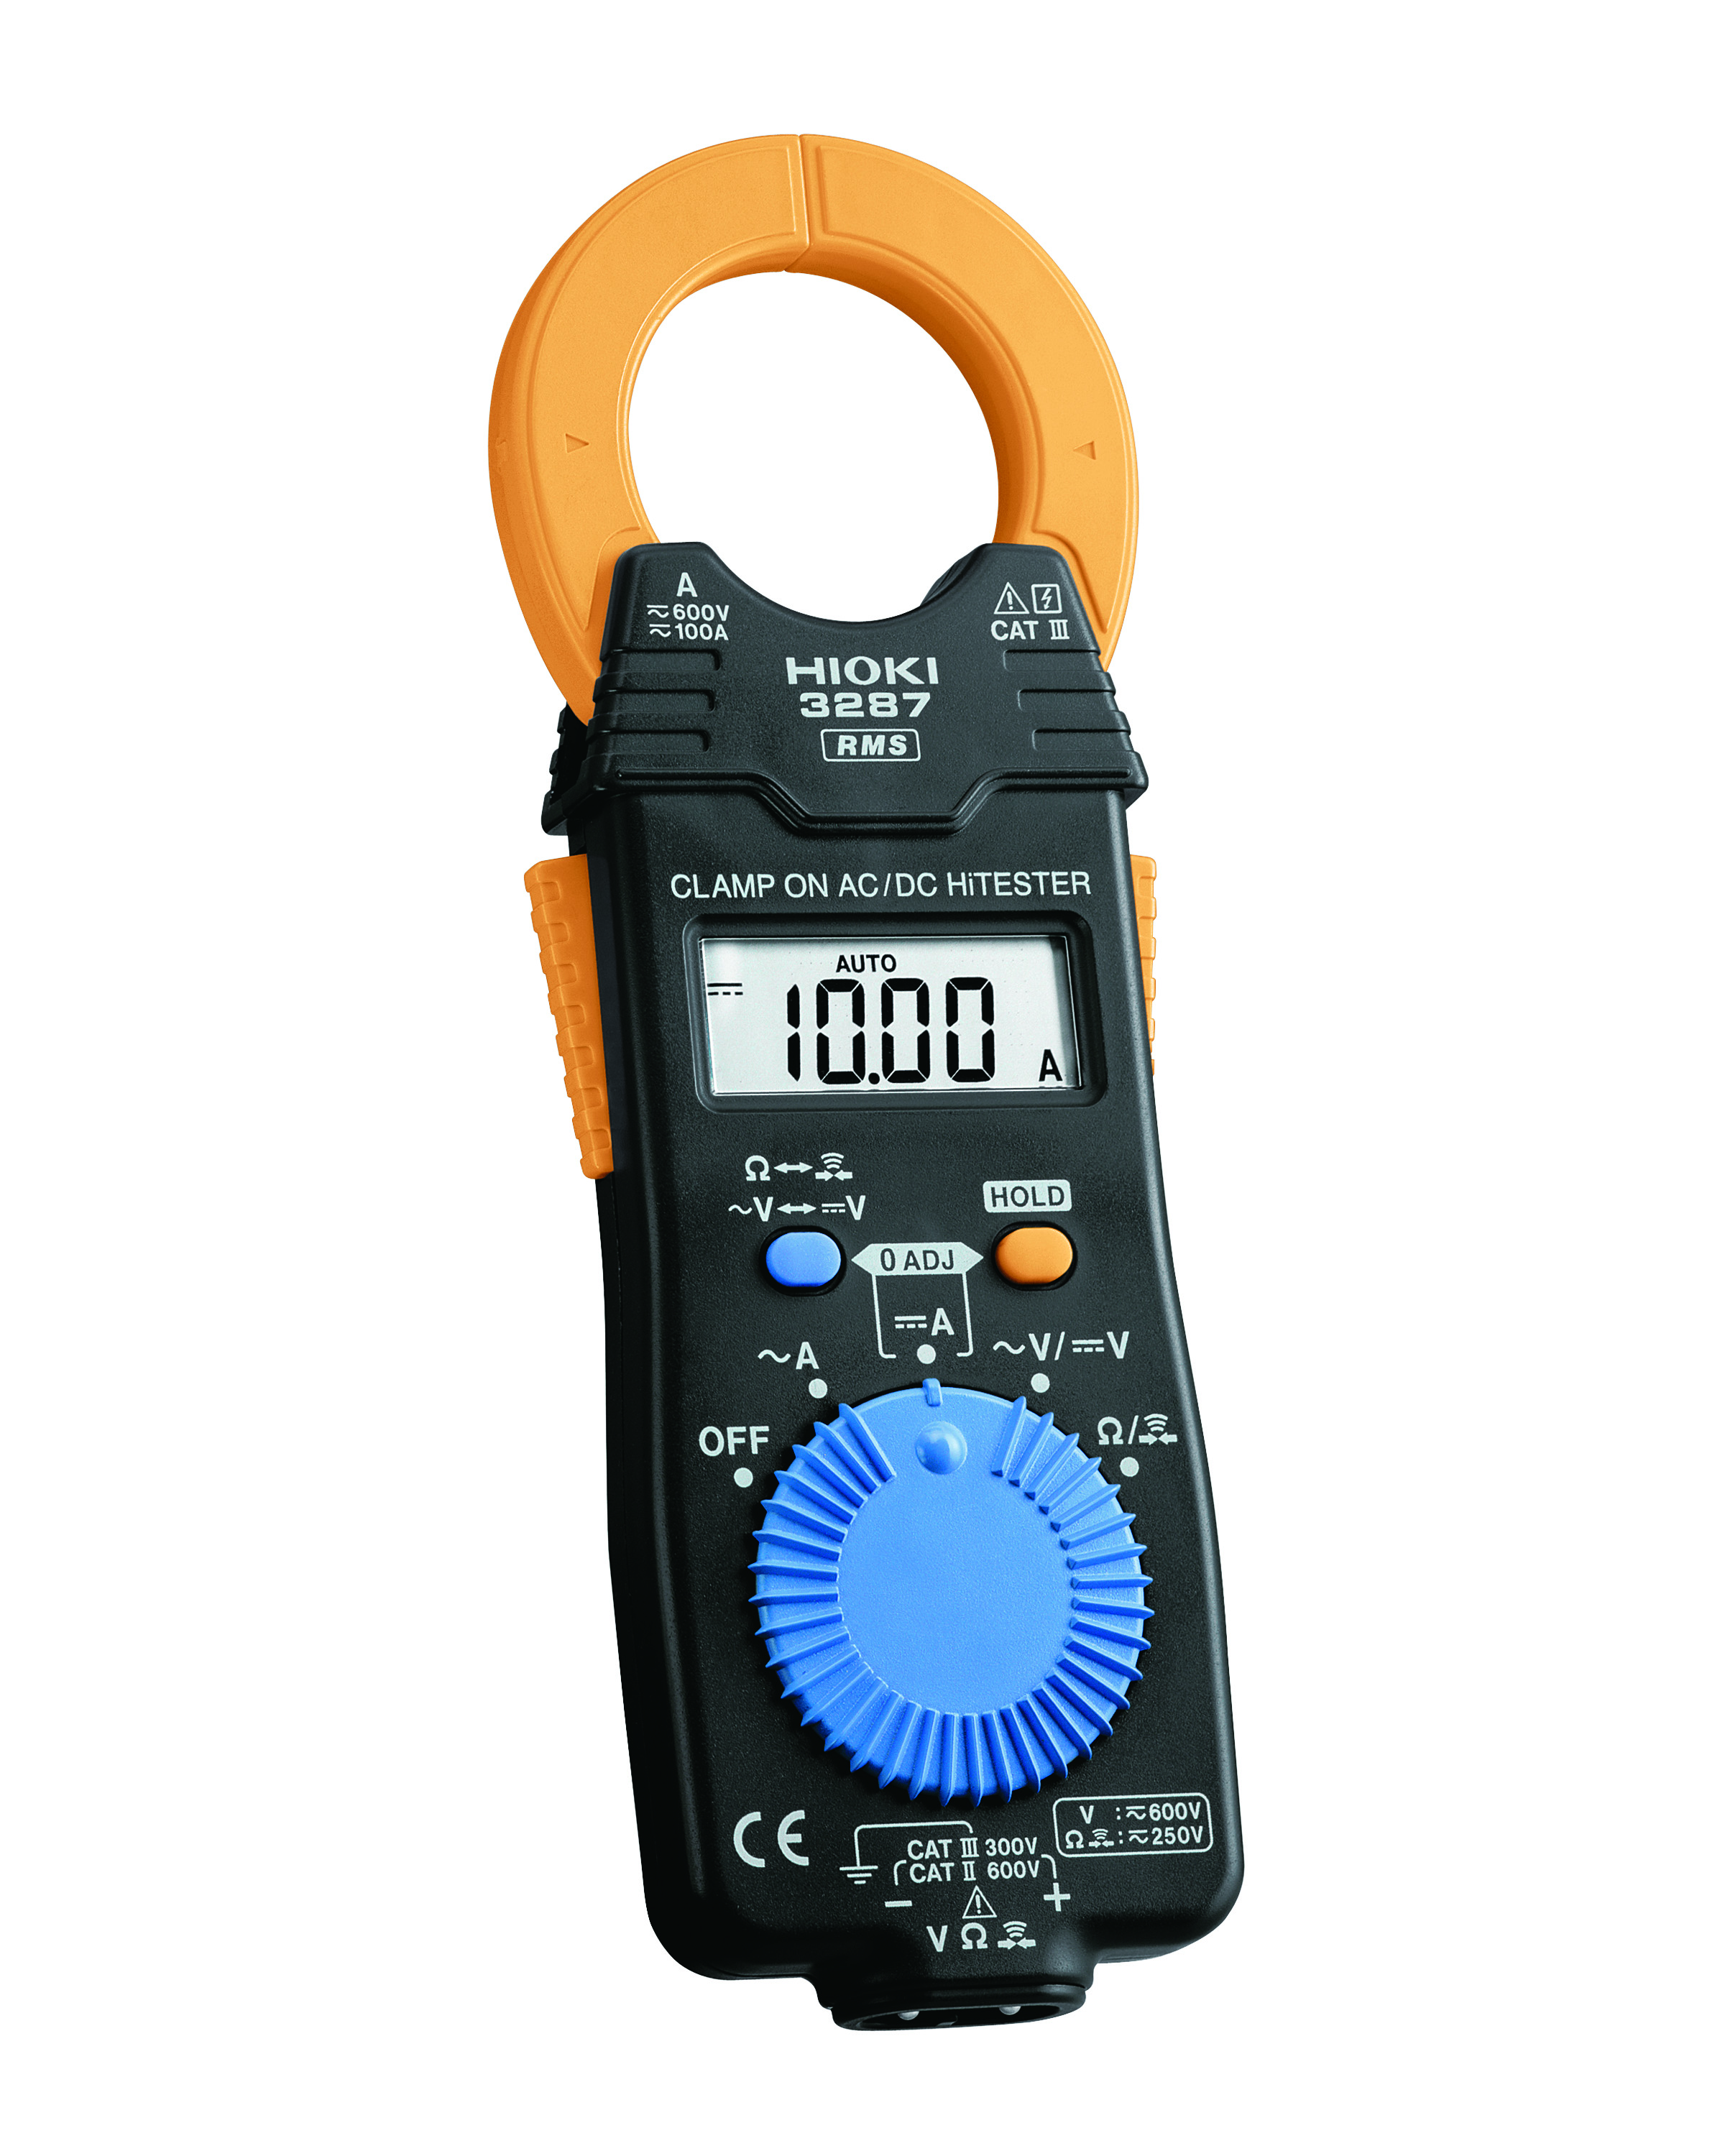 3287 Clamp Tester, 100A AC/DC, TRMS, CAT III 600V